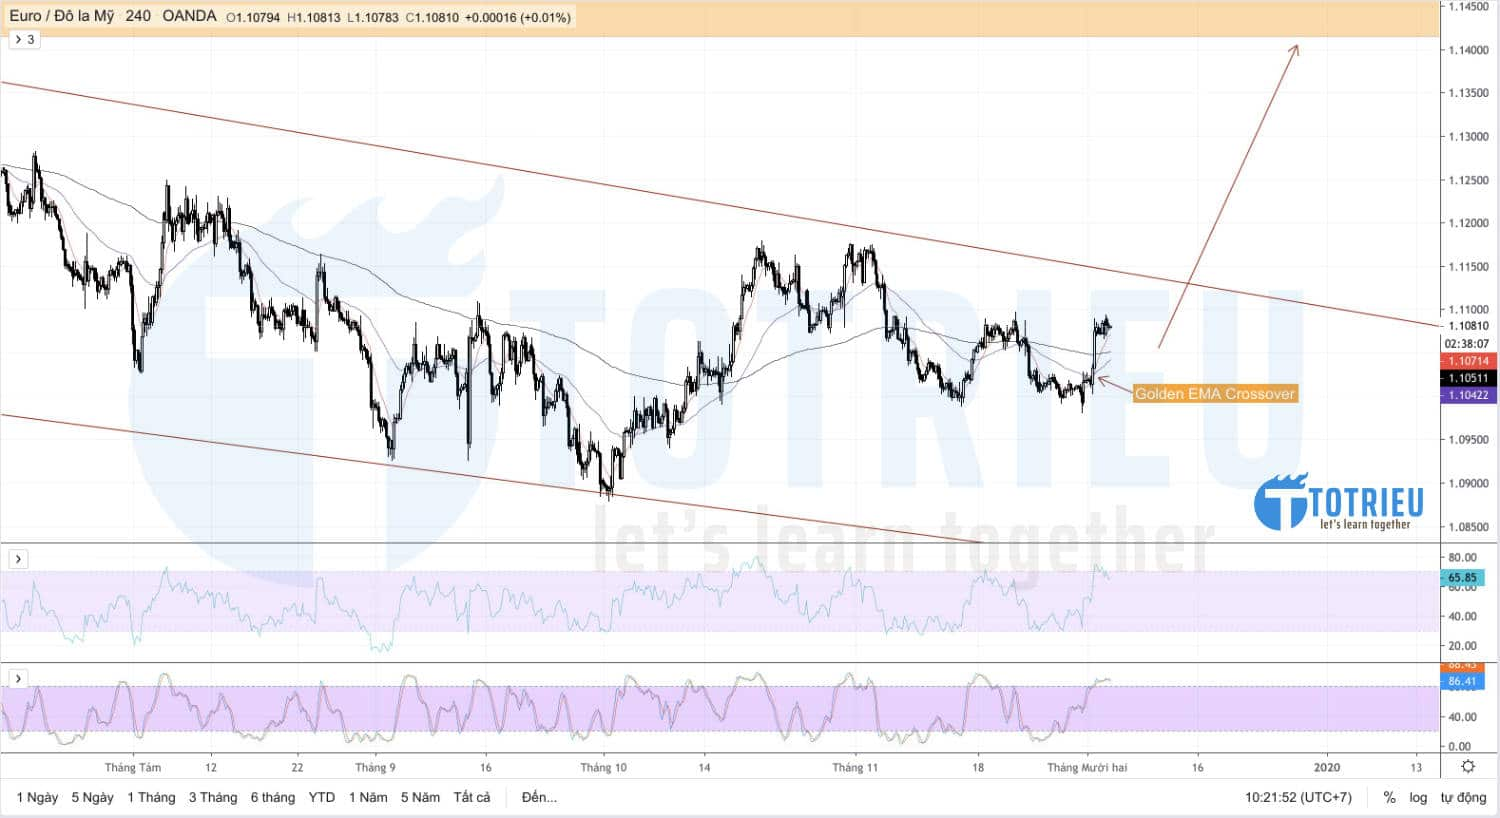 EUR/USD Chart H4: Golden EMA Crossover